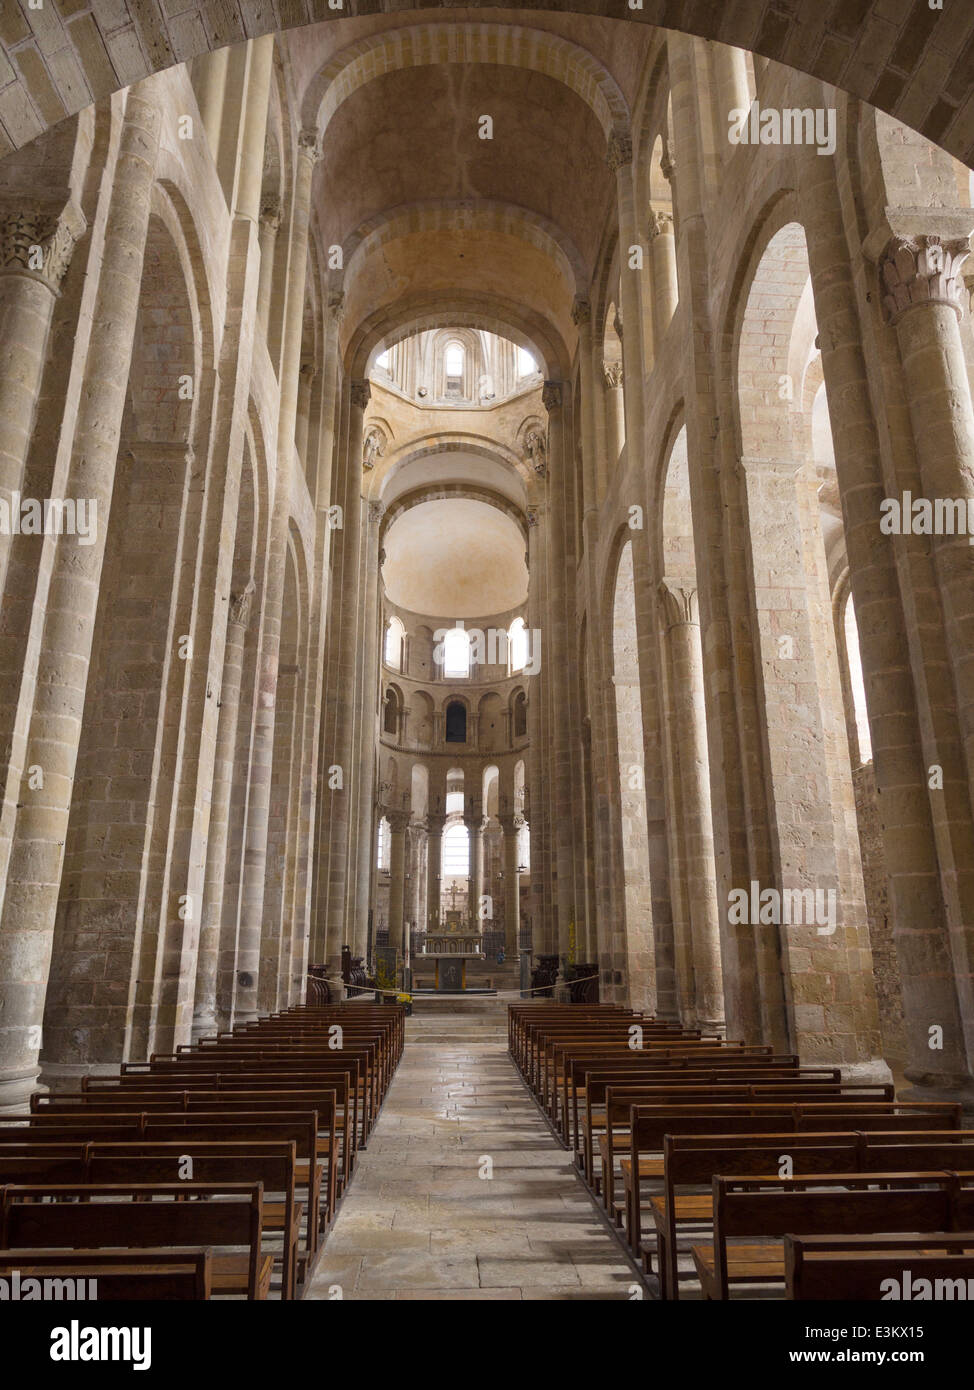 The austere interior centre aisle of the Church of Saint Foy . Columns soar and the plain interior stonework glows - Stock Image